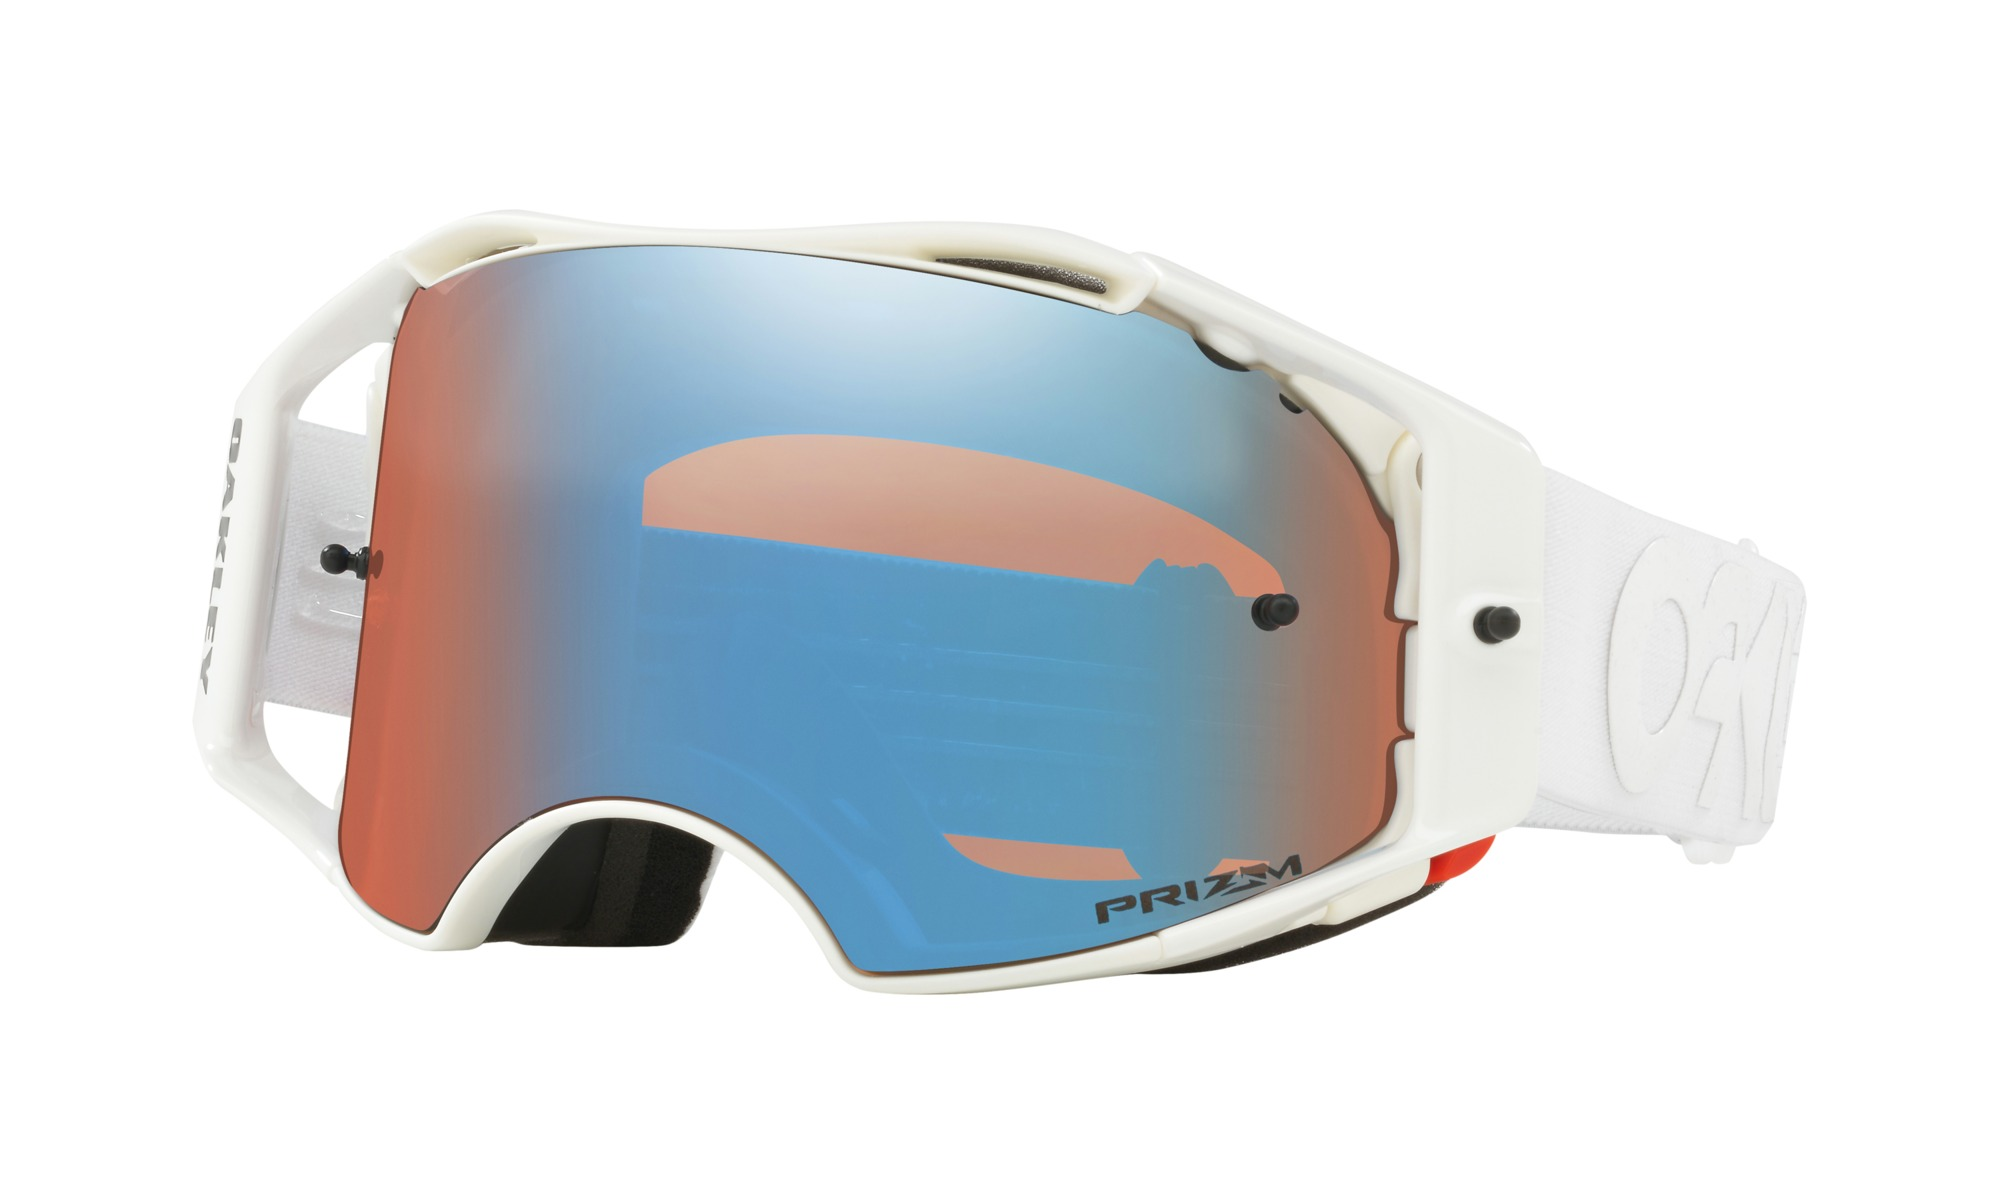 acb2eb9ee56 Oakley Airbrake MX   Factory Pilot Whiteout   Prizm Mx Sapphire   Ref.  OO7046-59